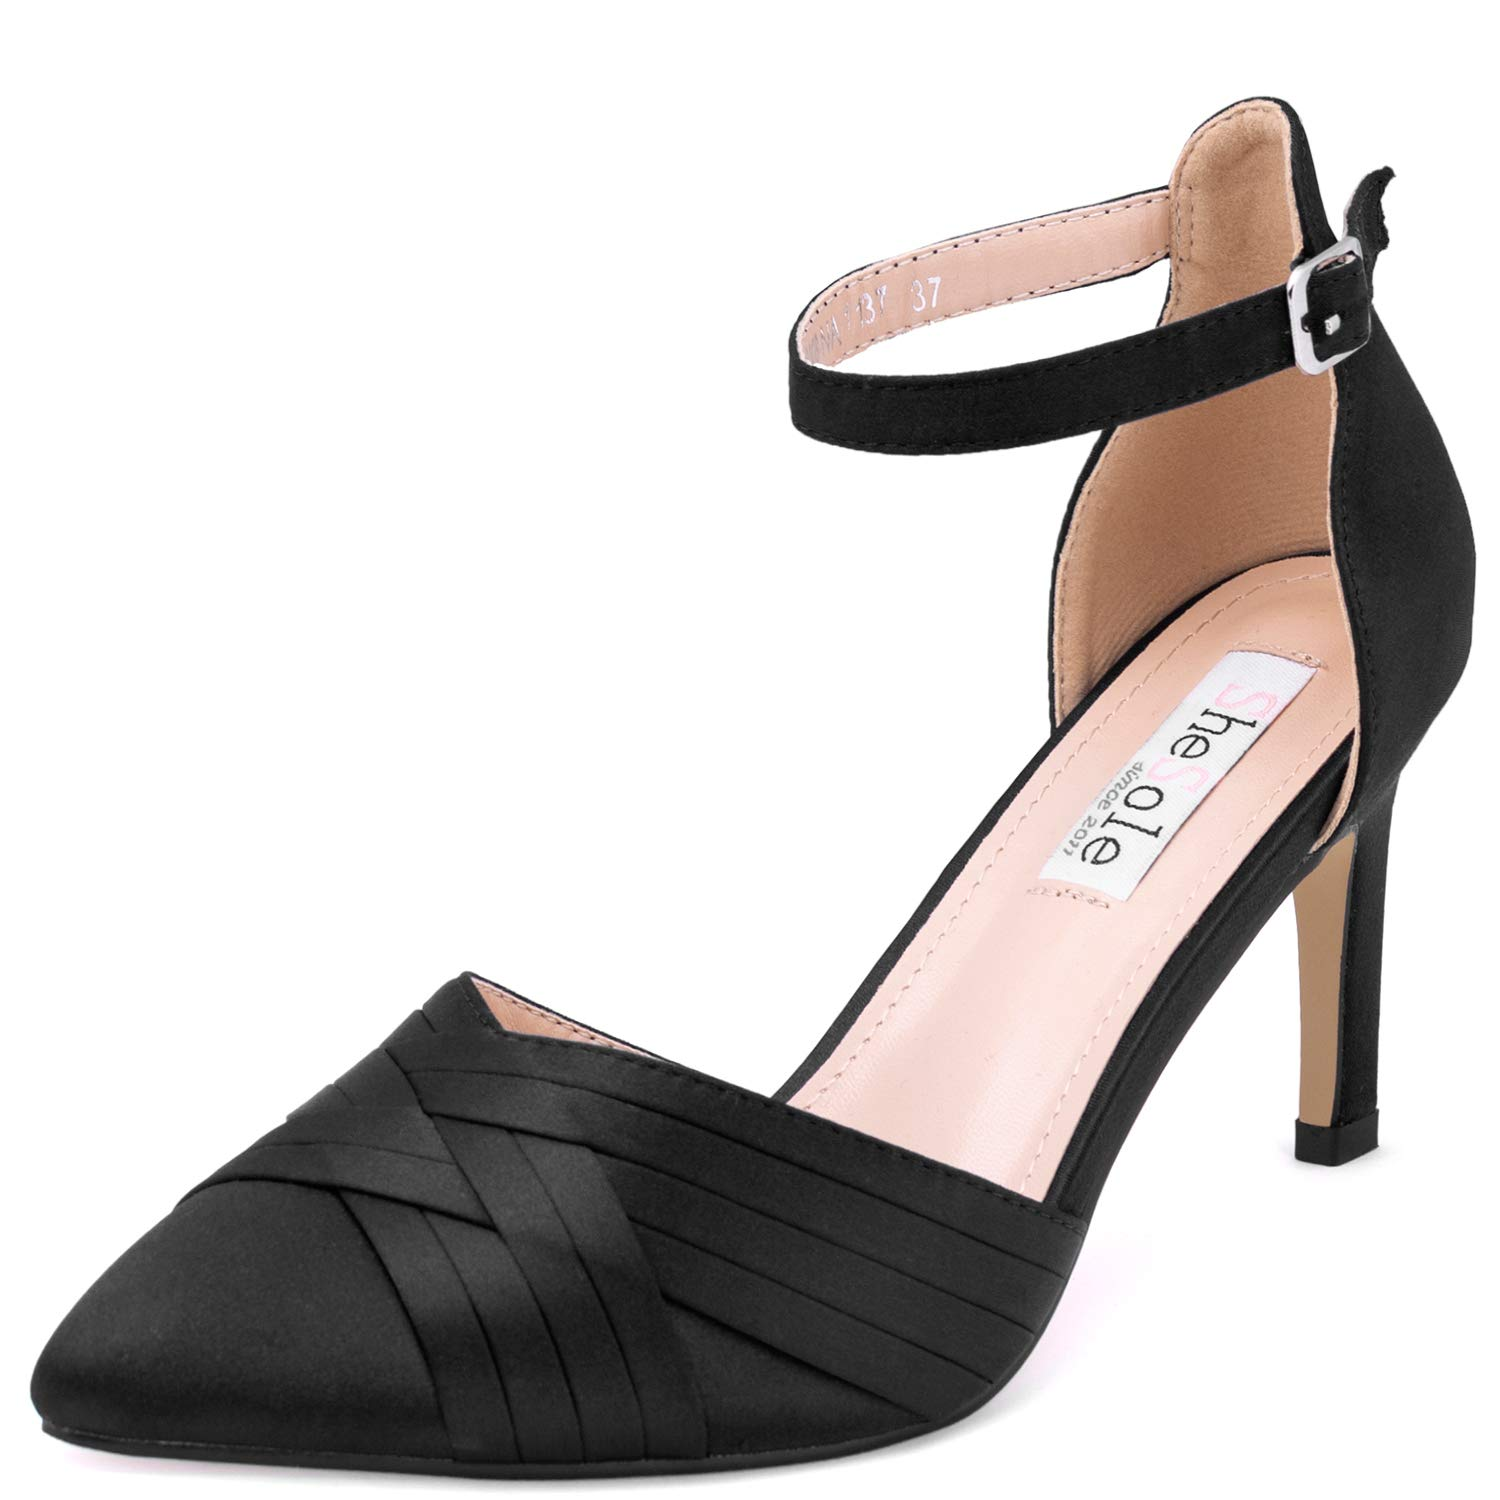 f174feb36b9 SheSole Women's Pointed Toe High Heels Ankle Strap Satin Dress Pumps Shoes